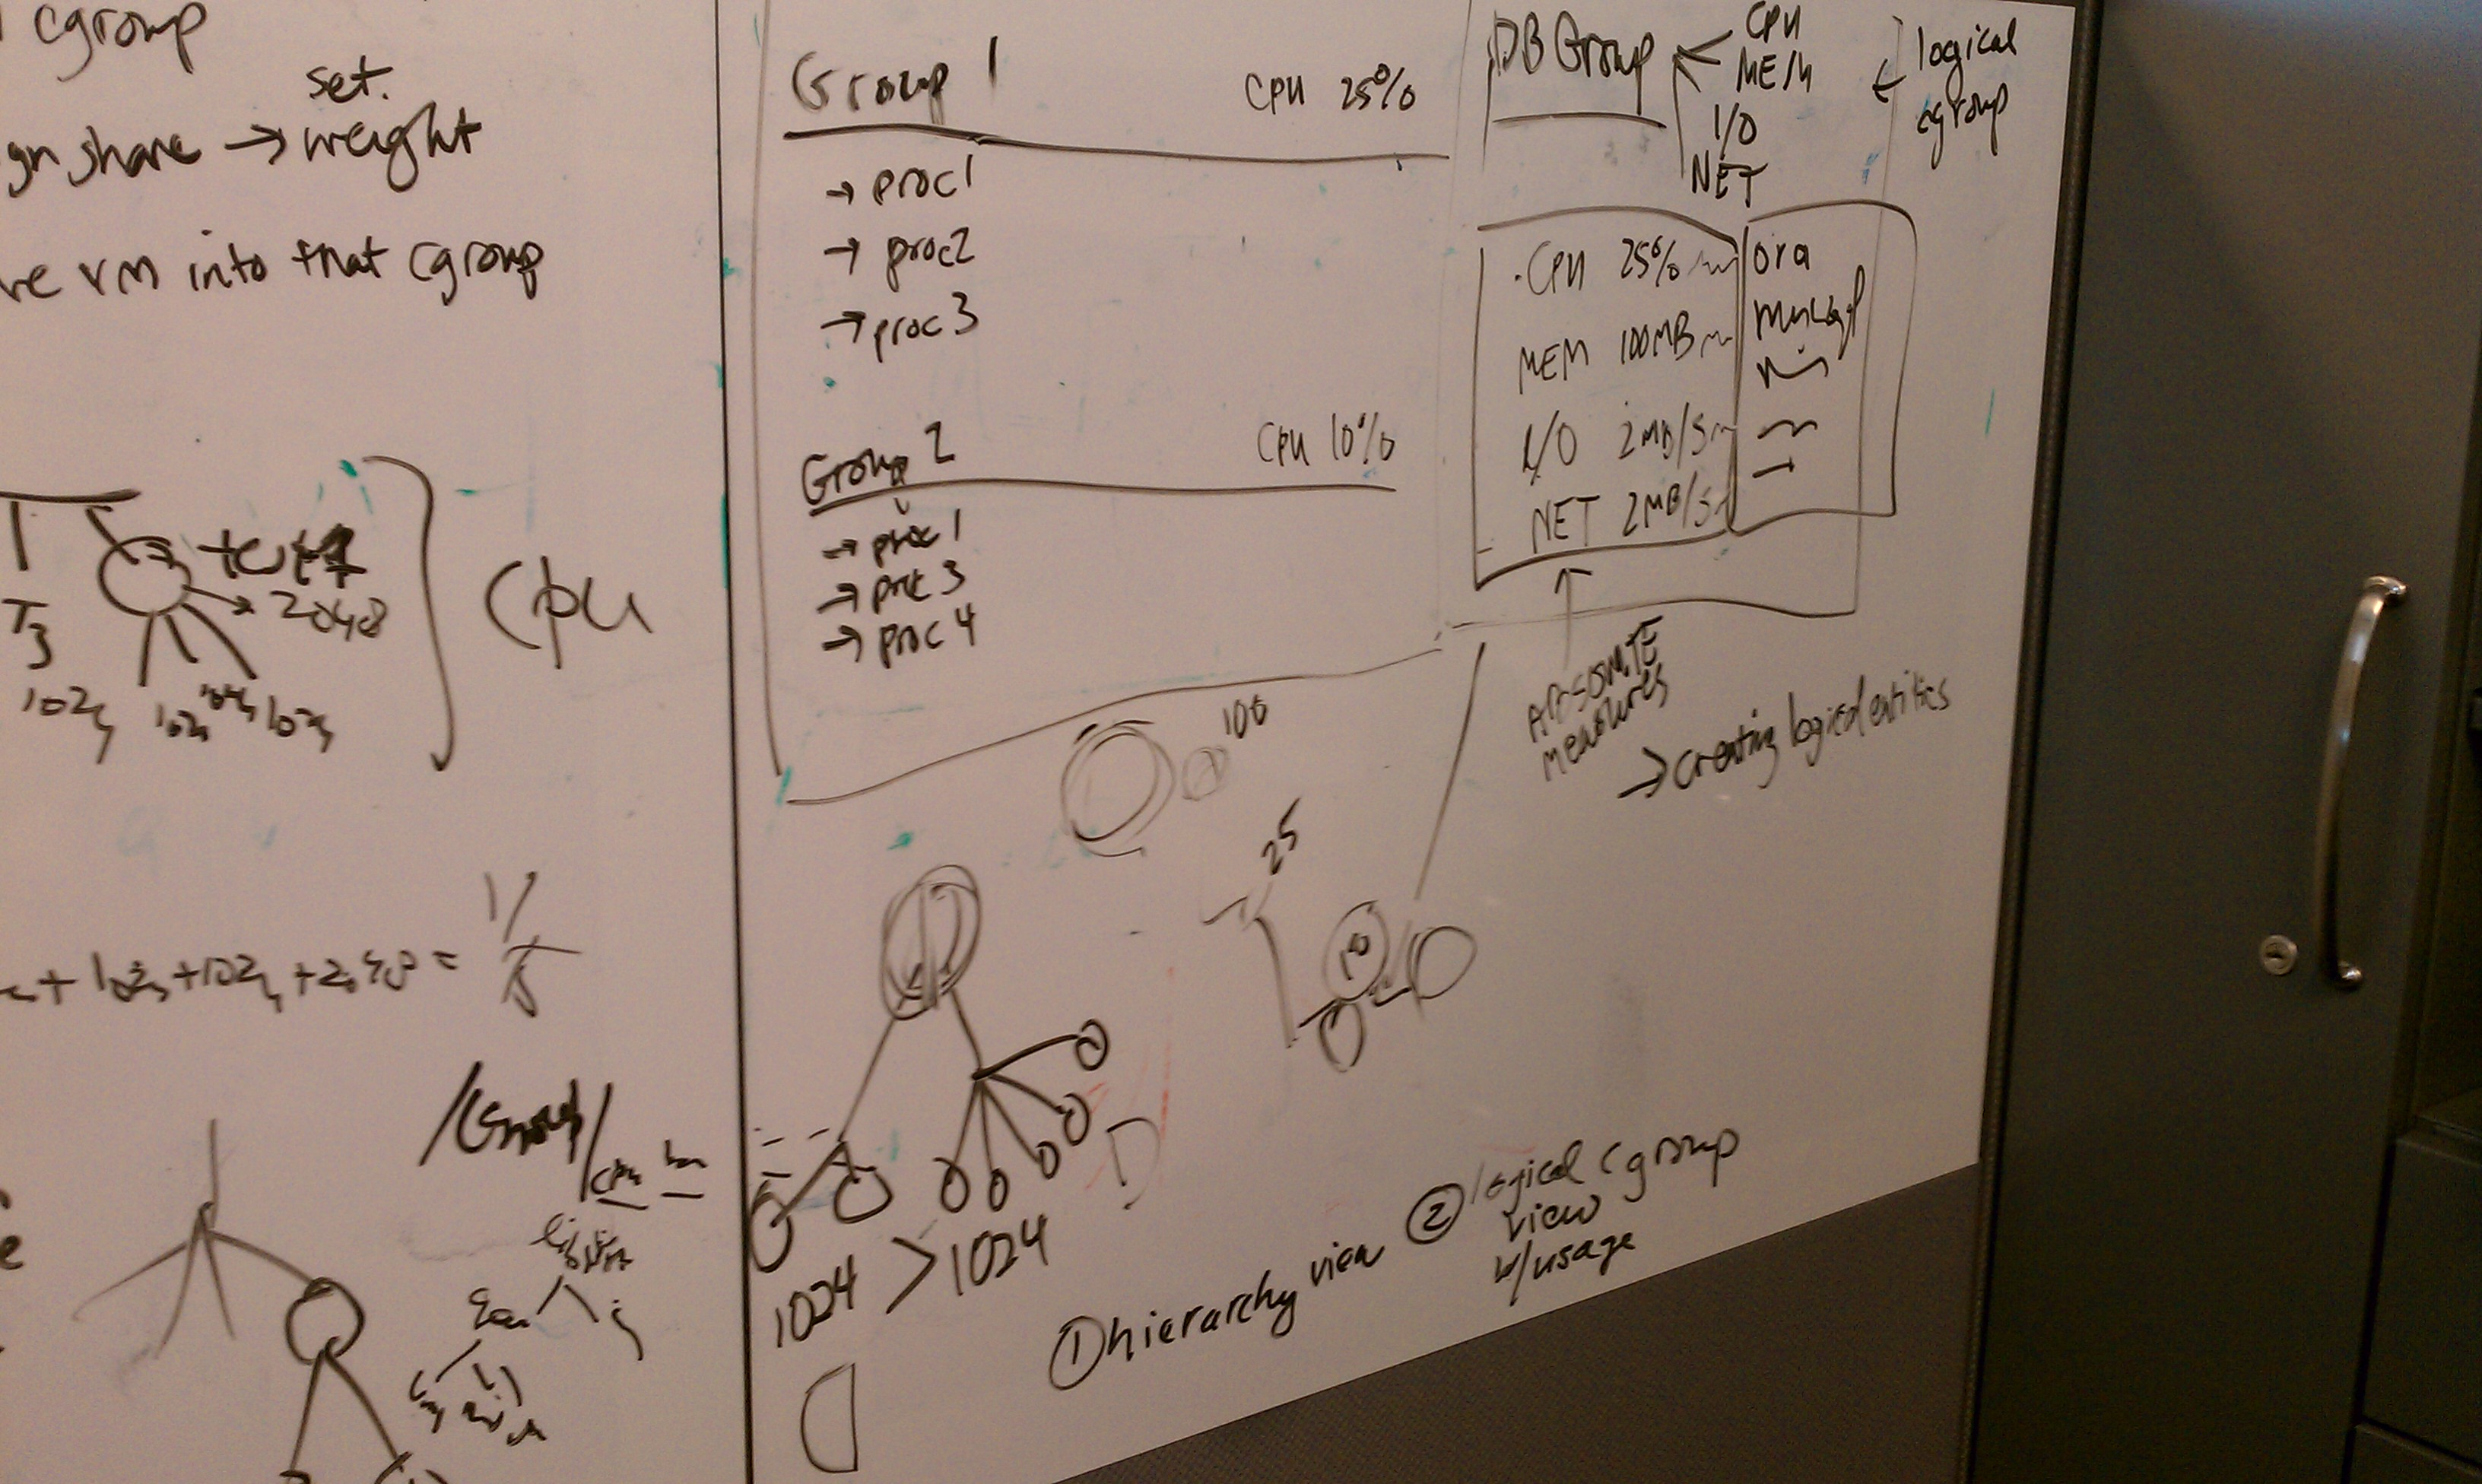 Cgroups-early-whiteboard-3.jpg